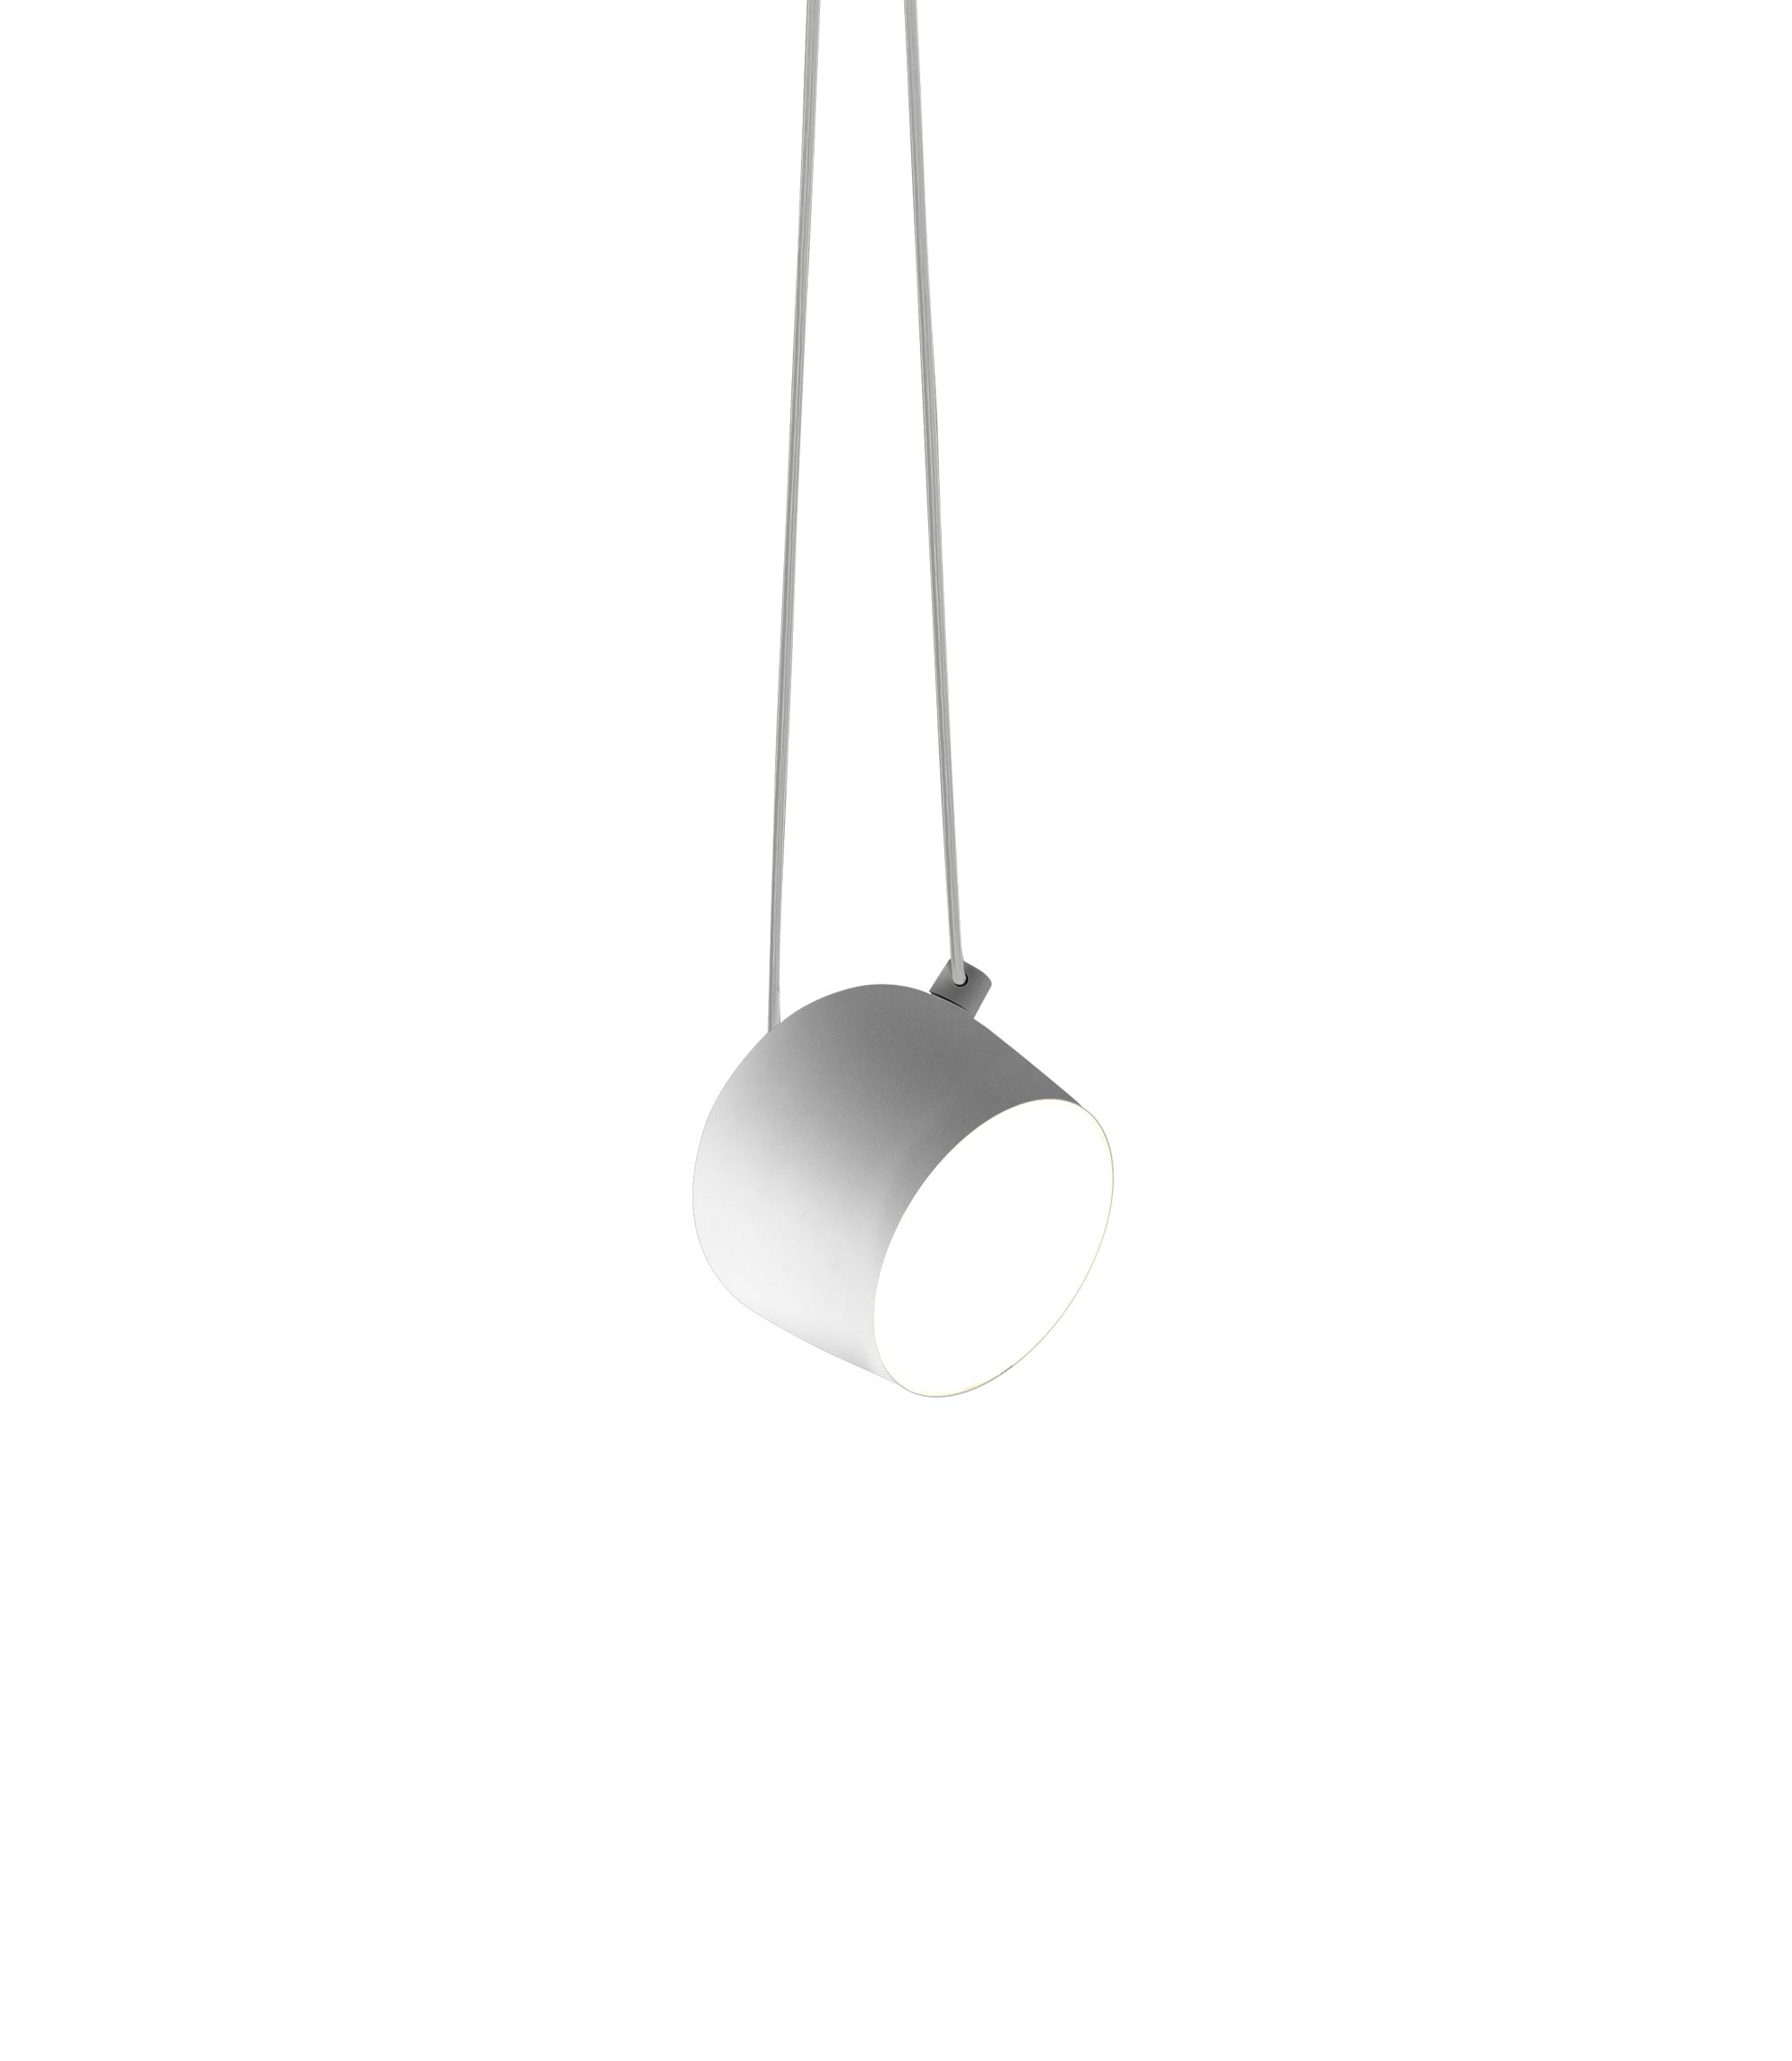 Flos Pertaining To Vincent 5 Light Drum Chandeliers (View 12 of 25)